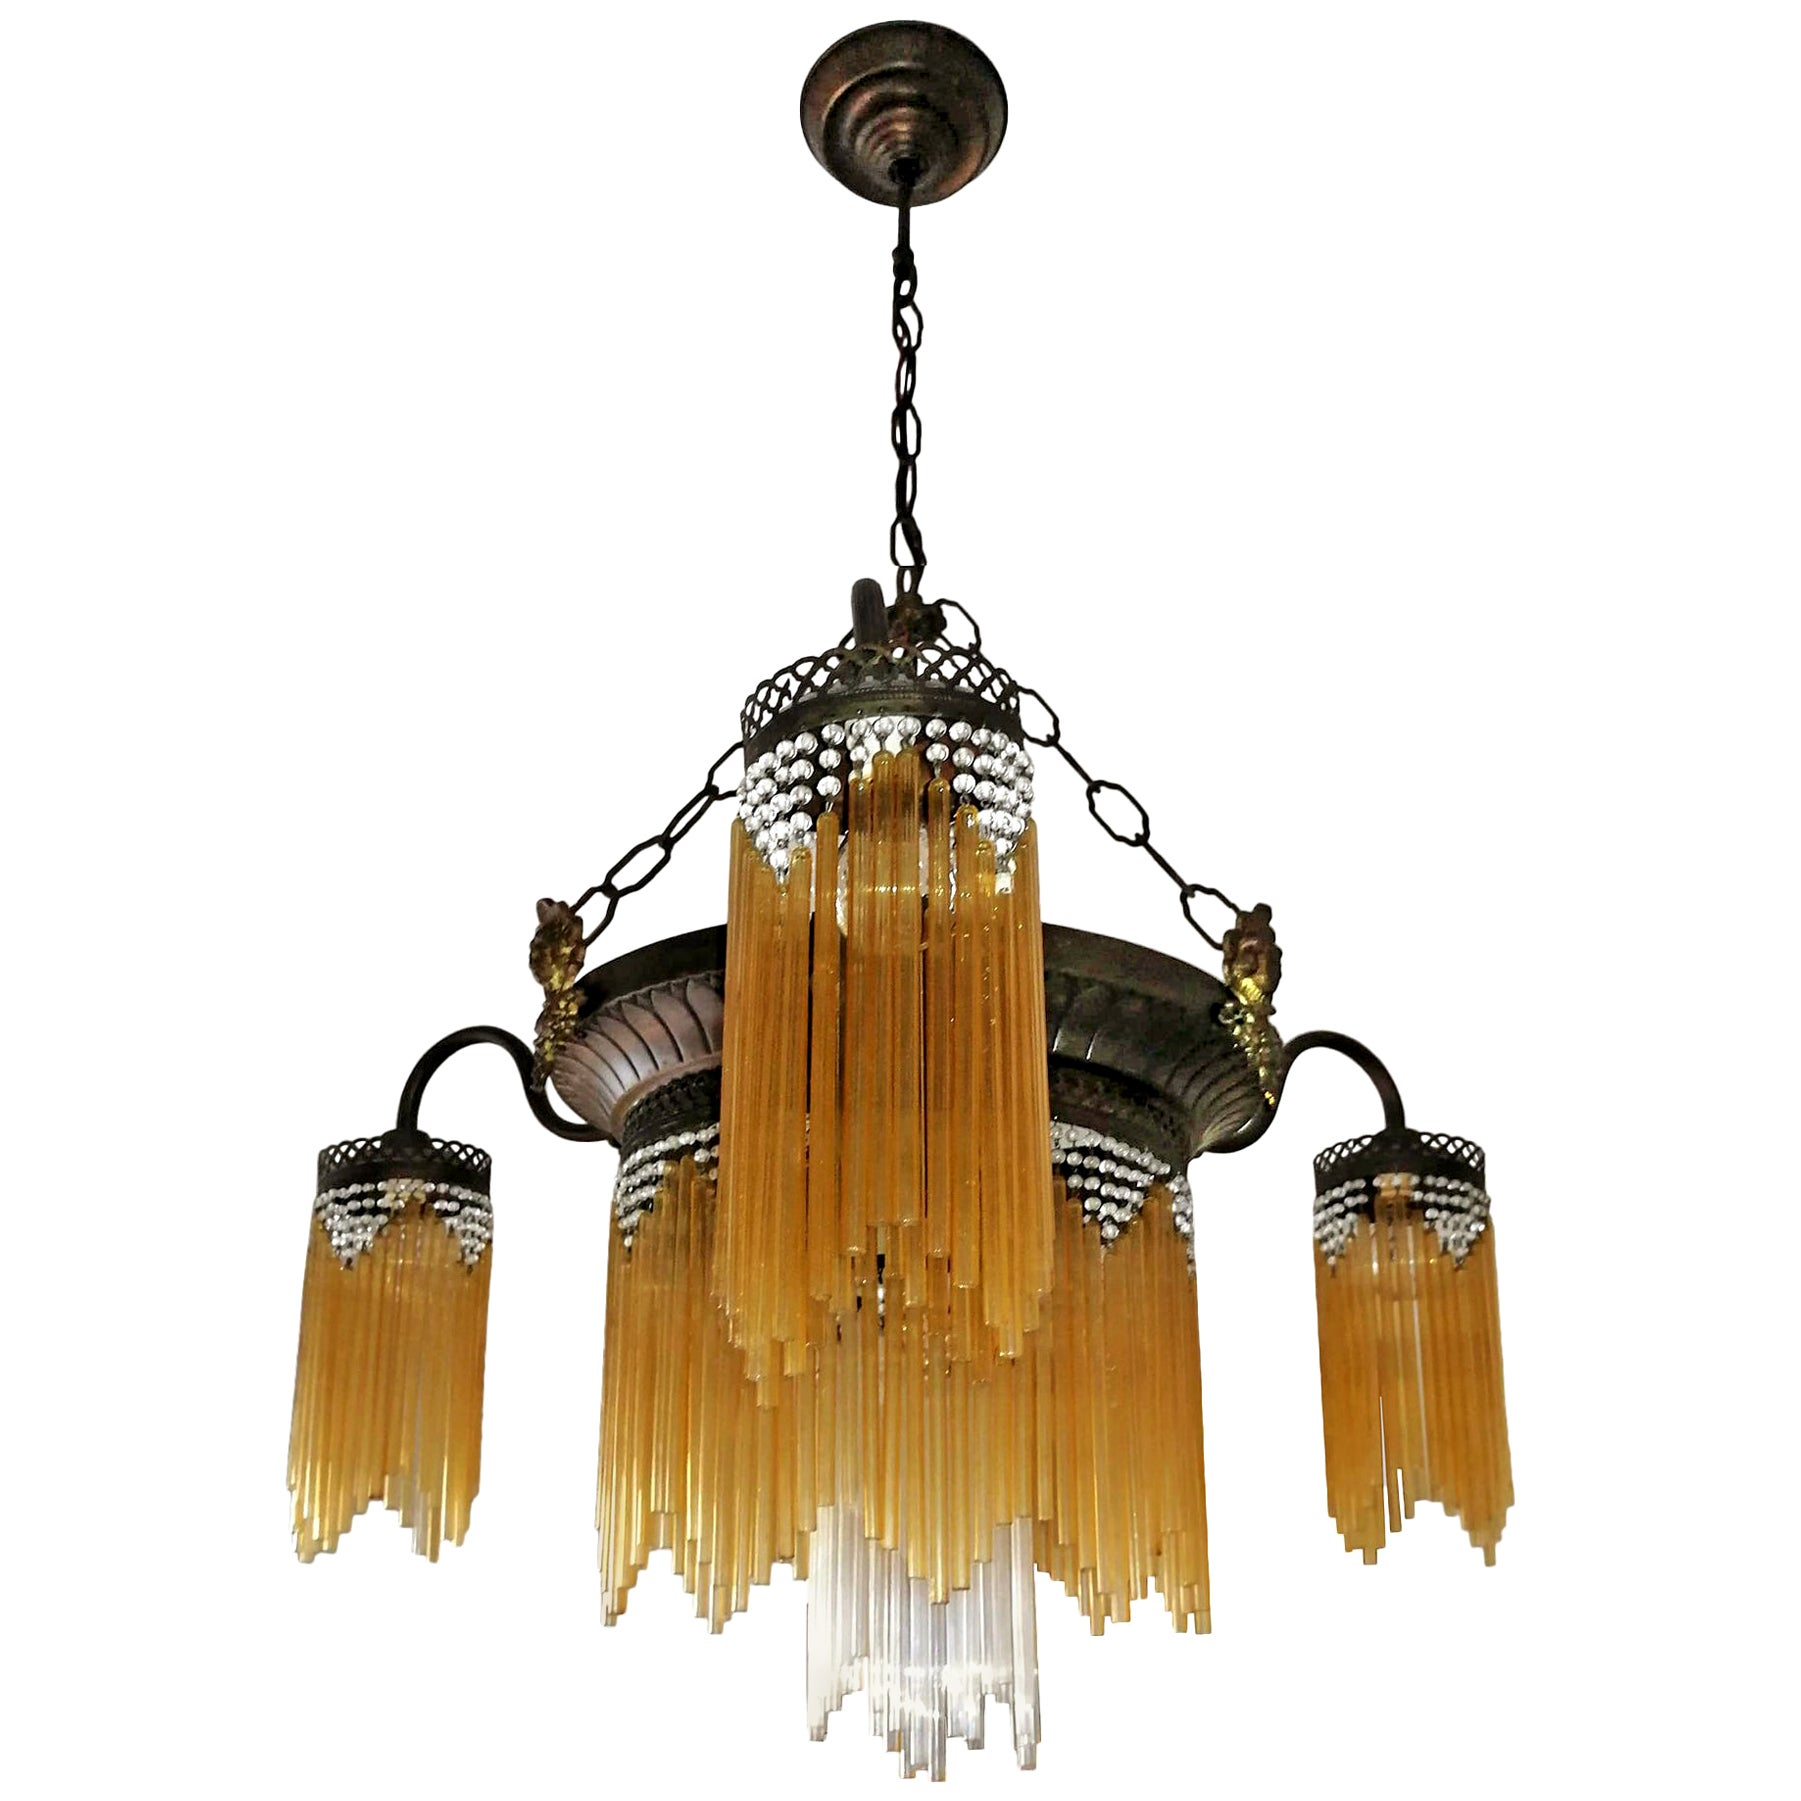 French Art Deco and Art Nouveau Beaded Amber Glass Fringe 7-Light Chandelier